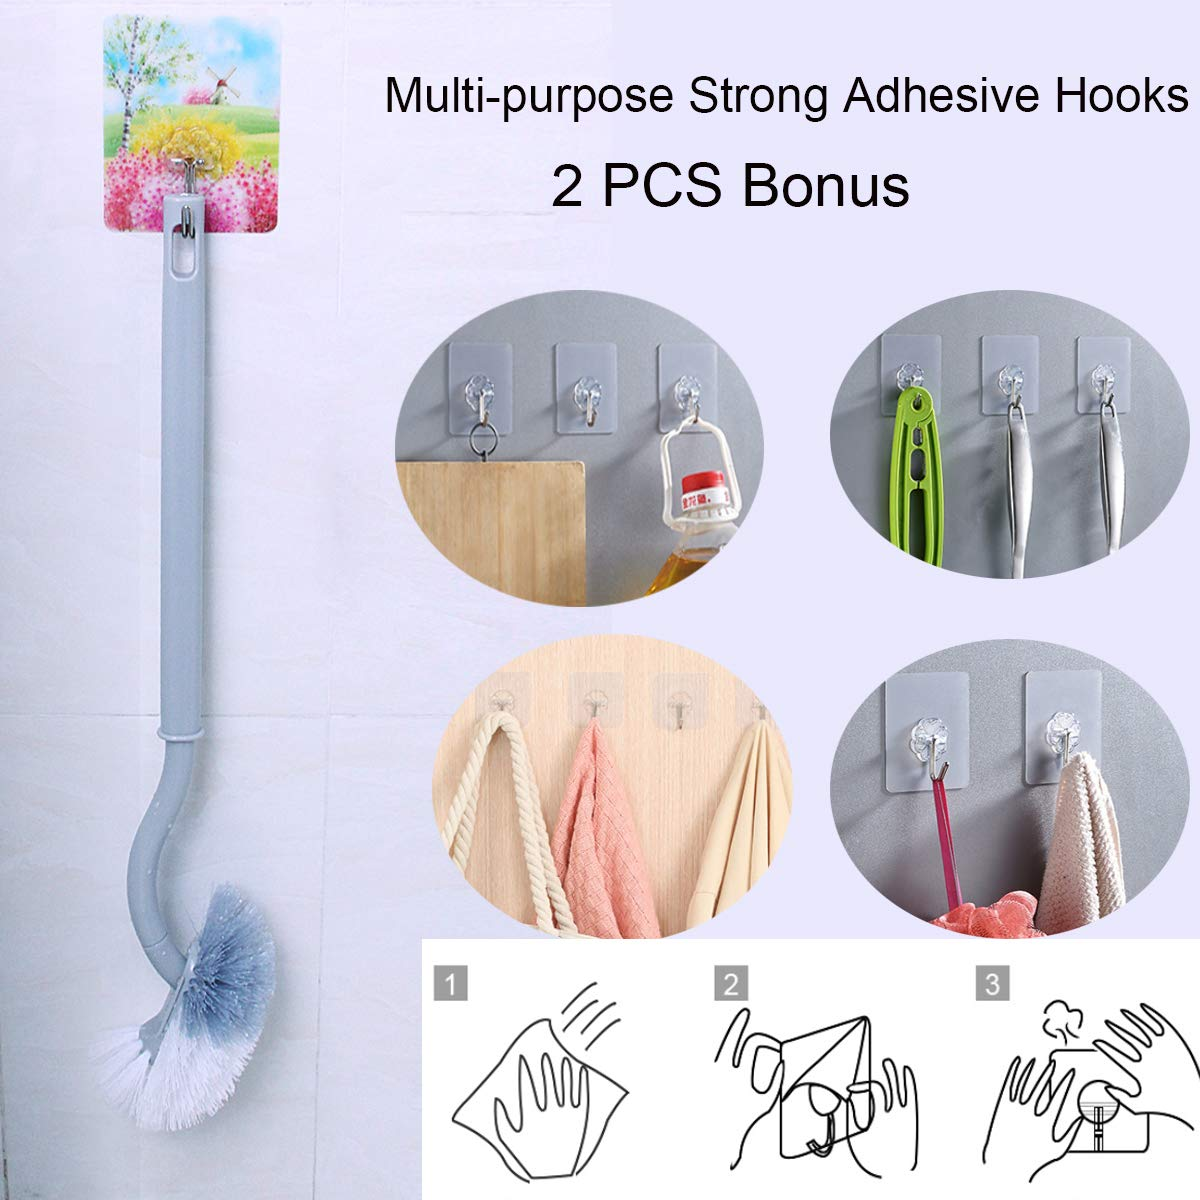 2 Pack 2 Pack Gray YAOYUE Bathroom Curved Compact Handle Toilet Bowl Brush Strong Bristles with 2 Pcs Bonus Adhesive Hooks